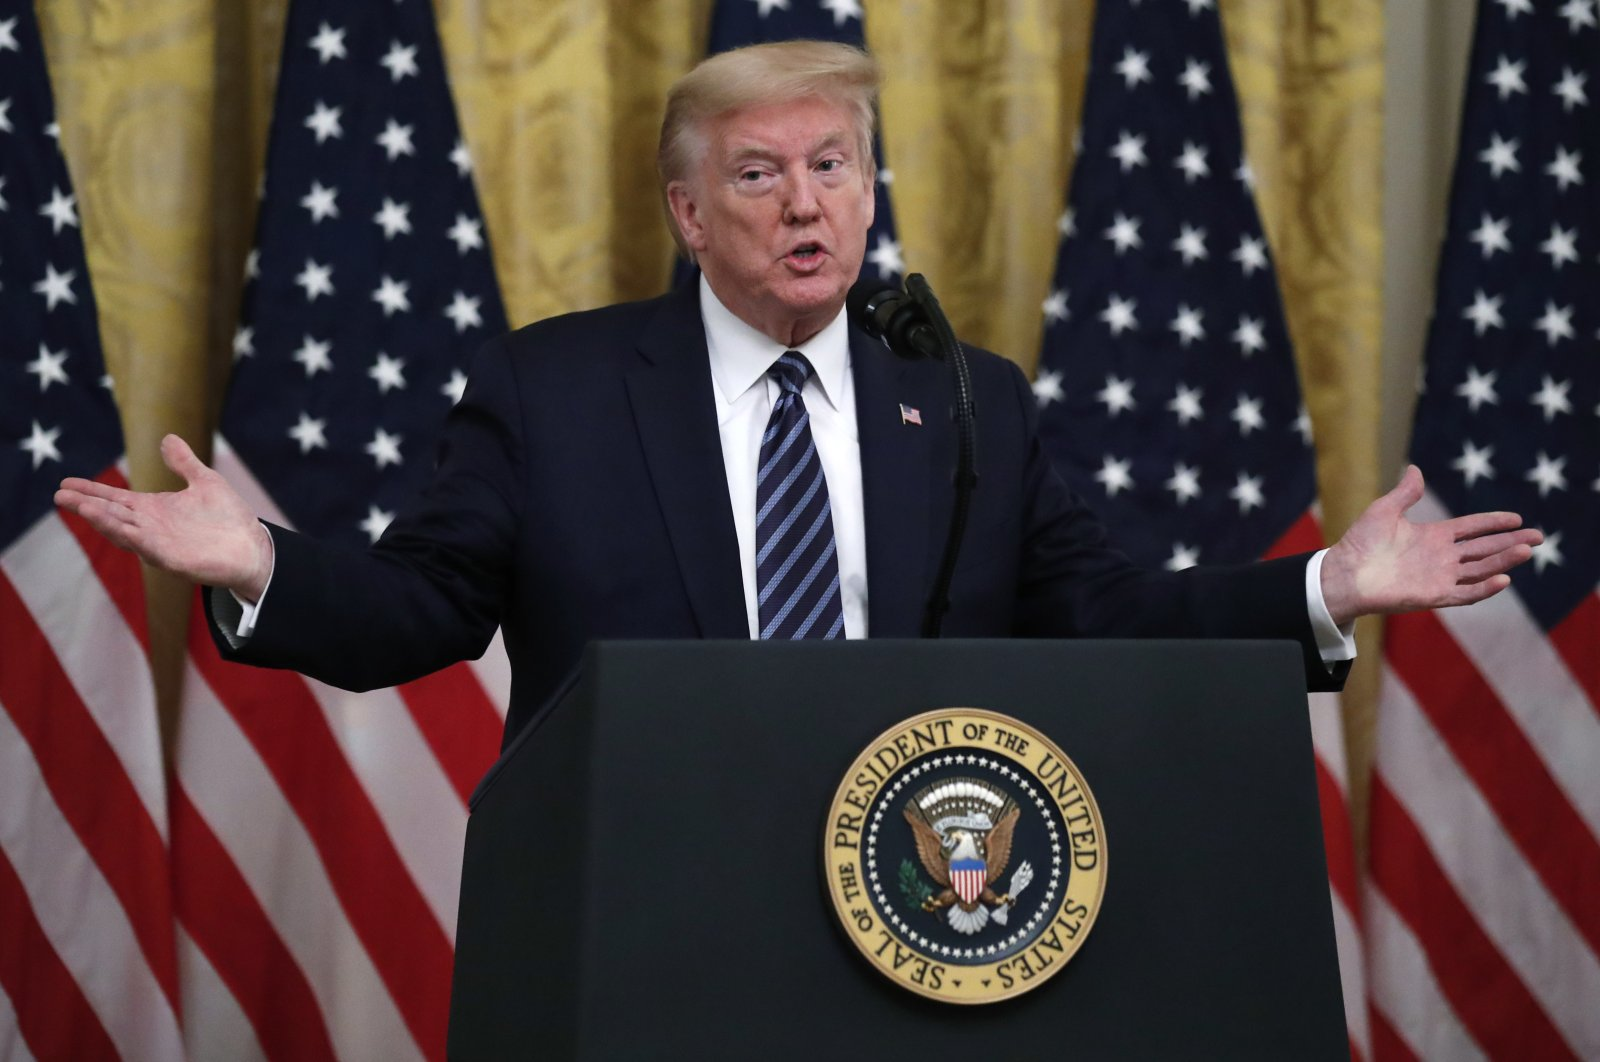 President Donald Trump answers questions from reporters during a event about protecting seniors, in the East Room of the White House, Thursday, April 30, 2020, in Washington. (AP Photo)